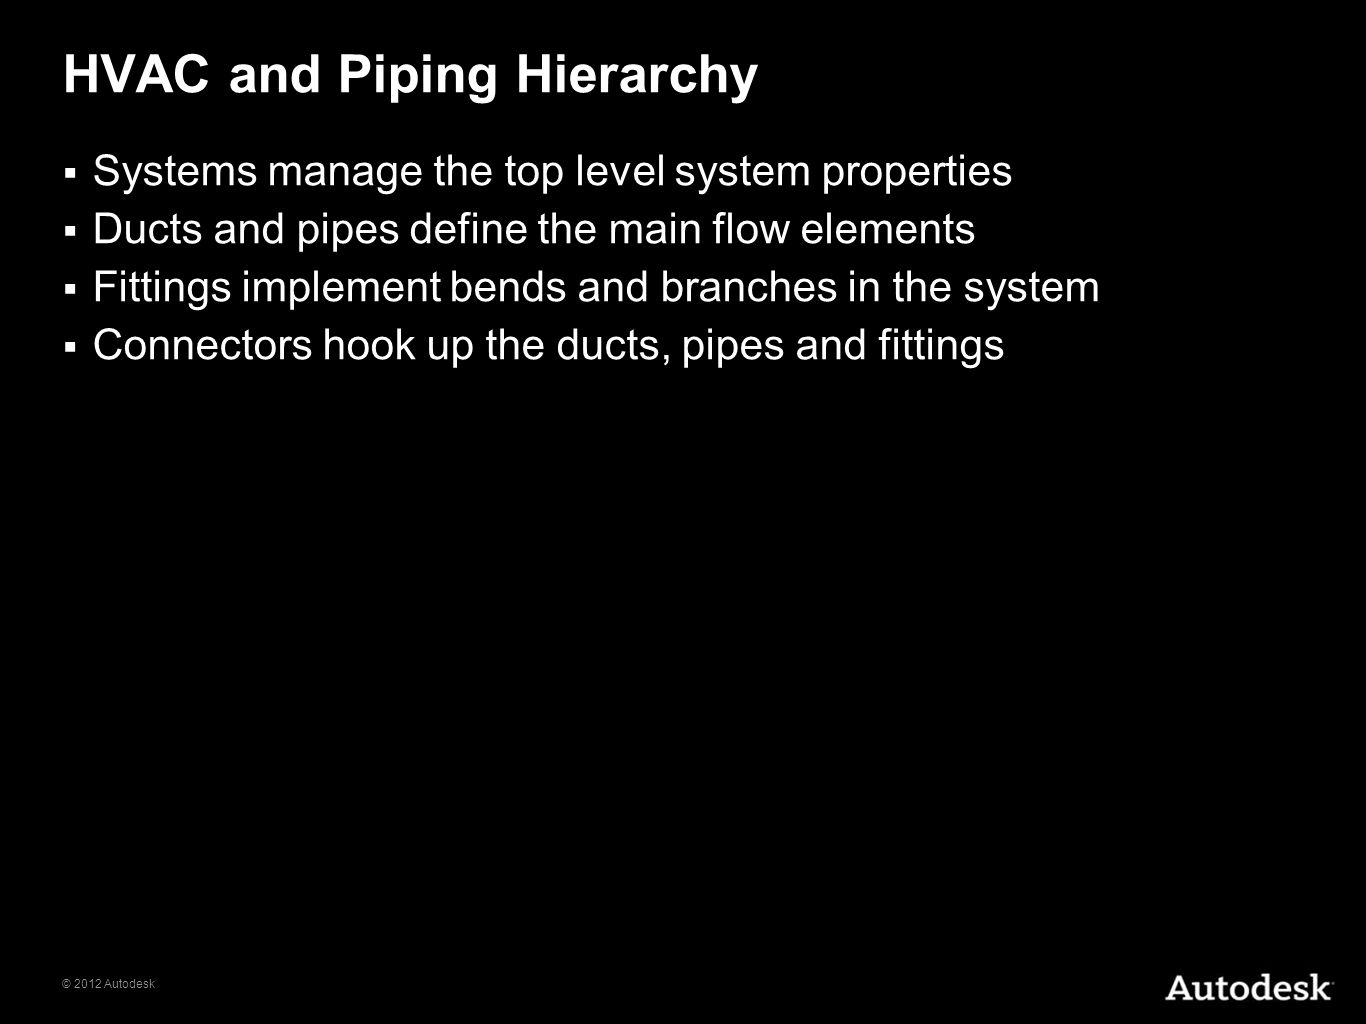 HVAC and Piping Hierarchy